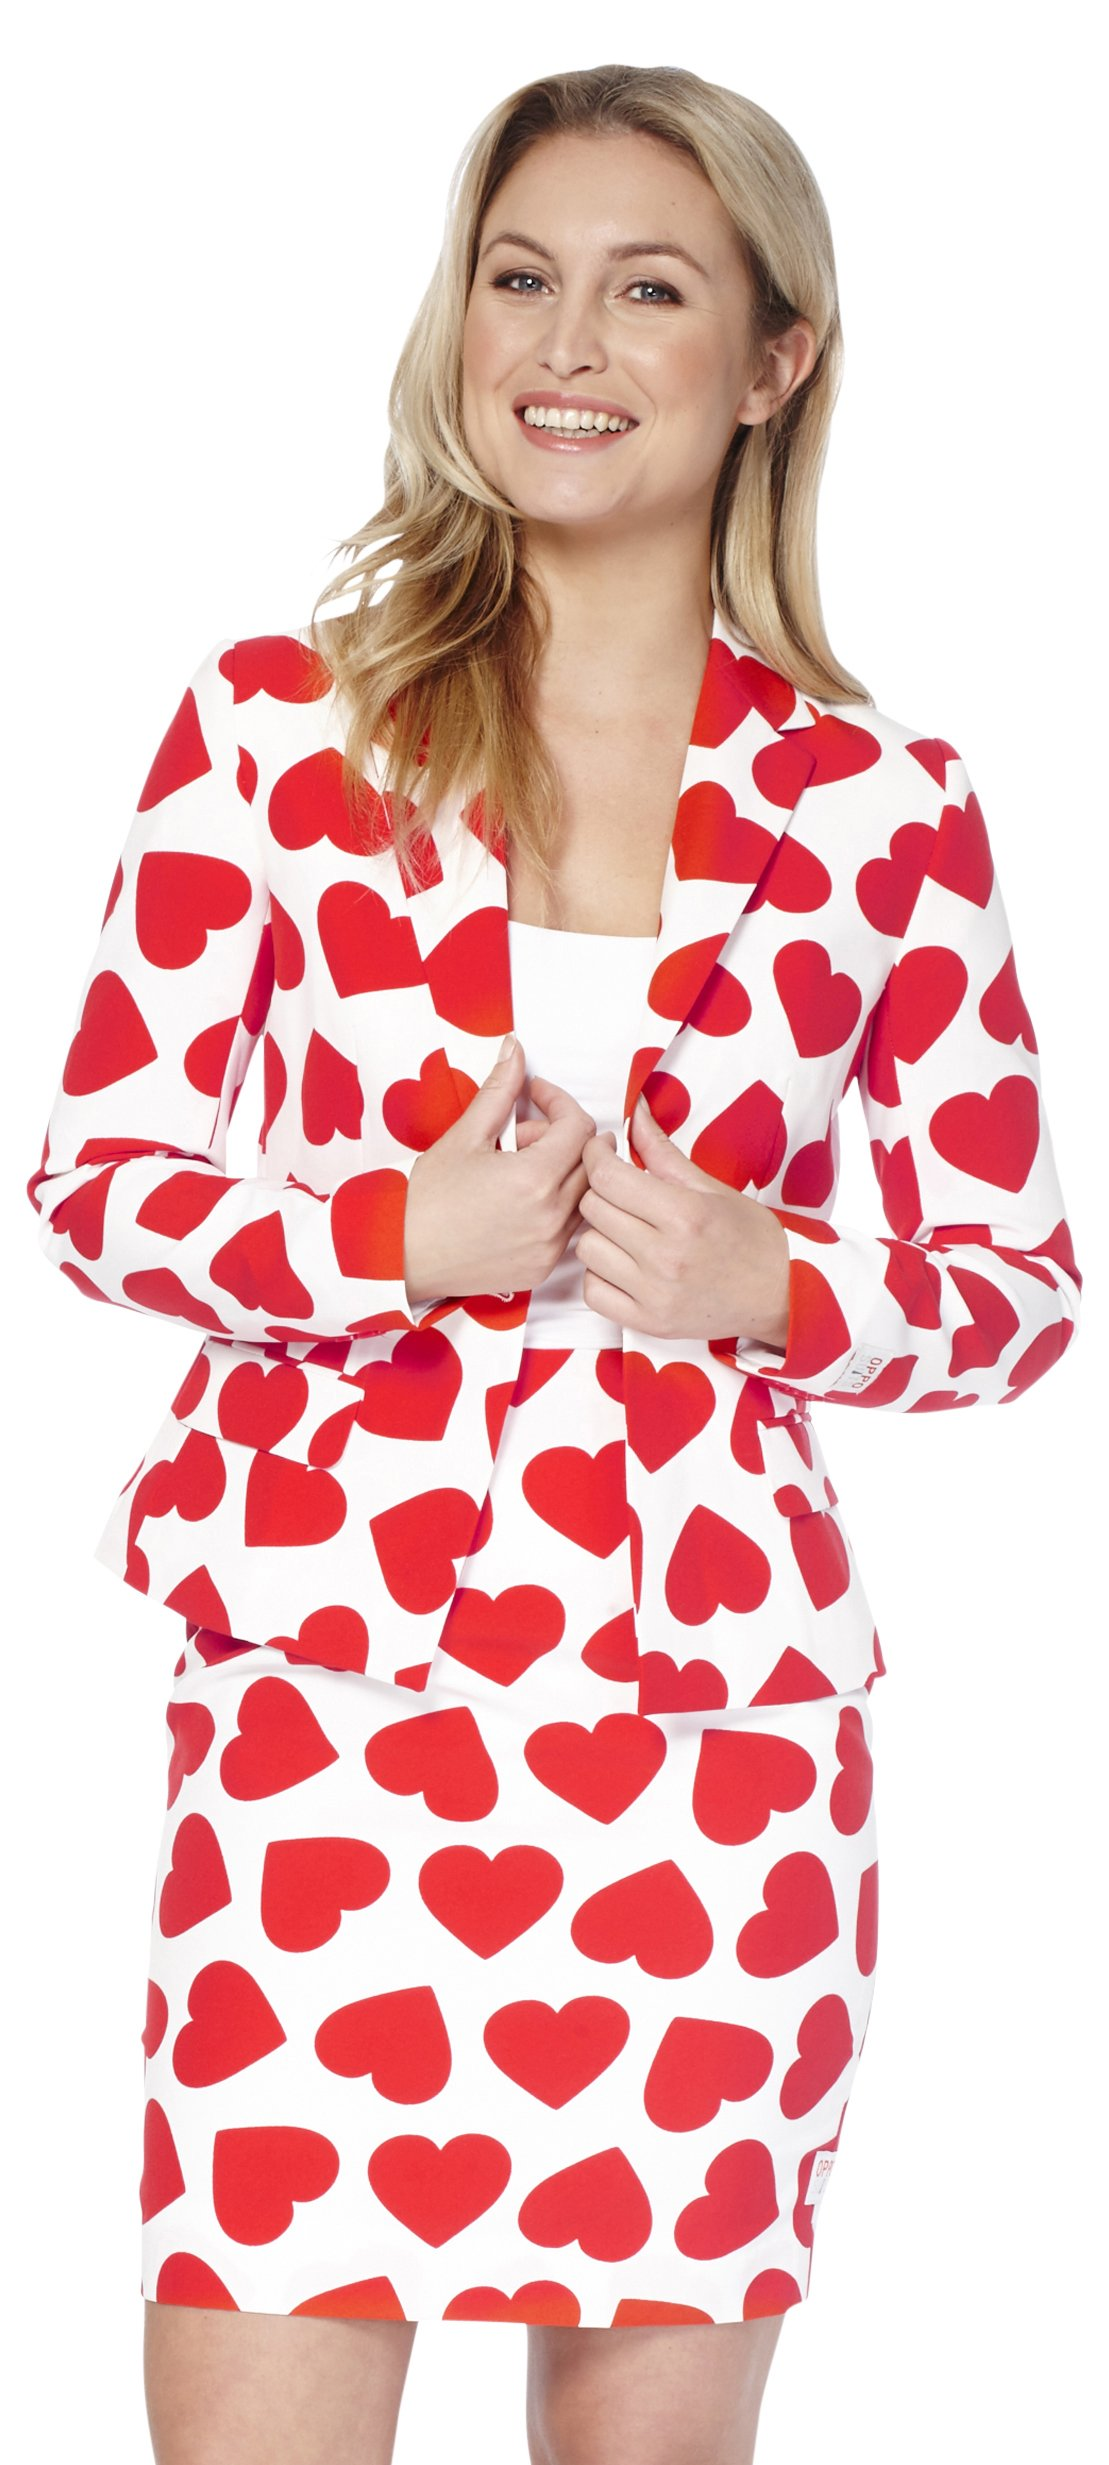 Opposuits Womens 'Queen Of hearts' Party Suit, 8